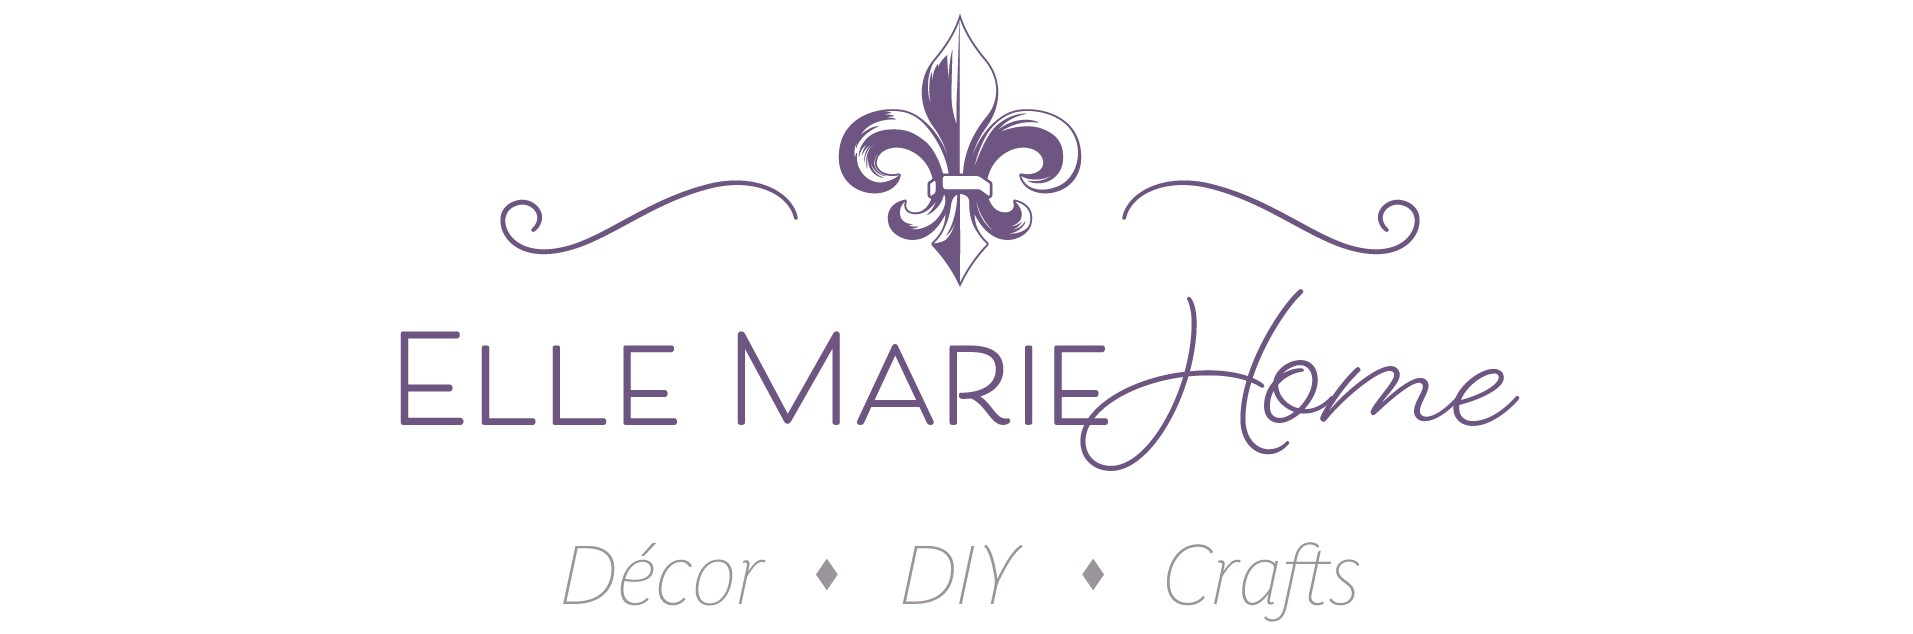 Elle Marie Home - Decor DIY Crafts